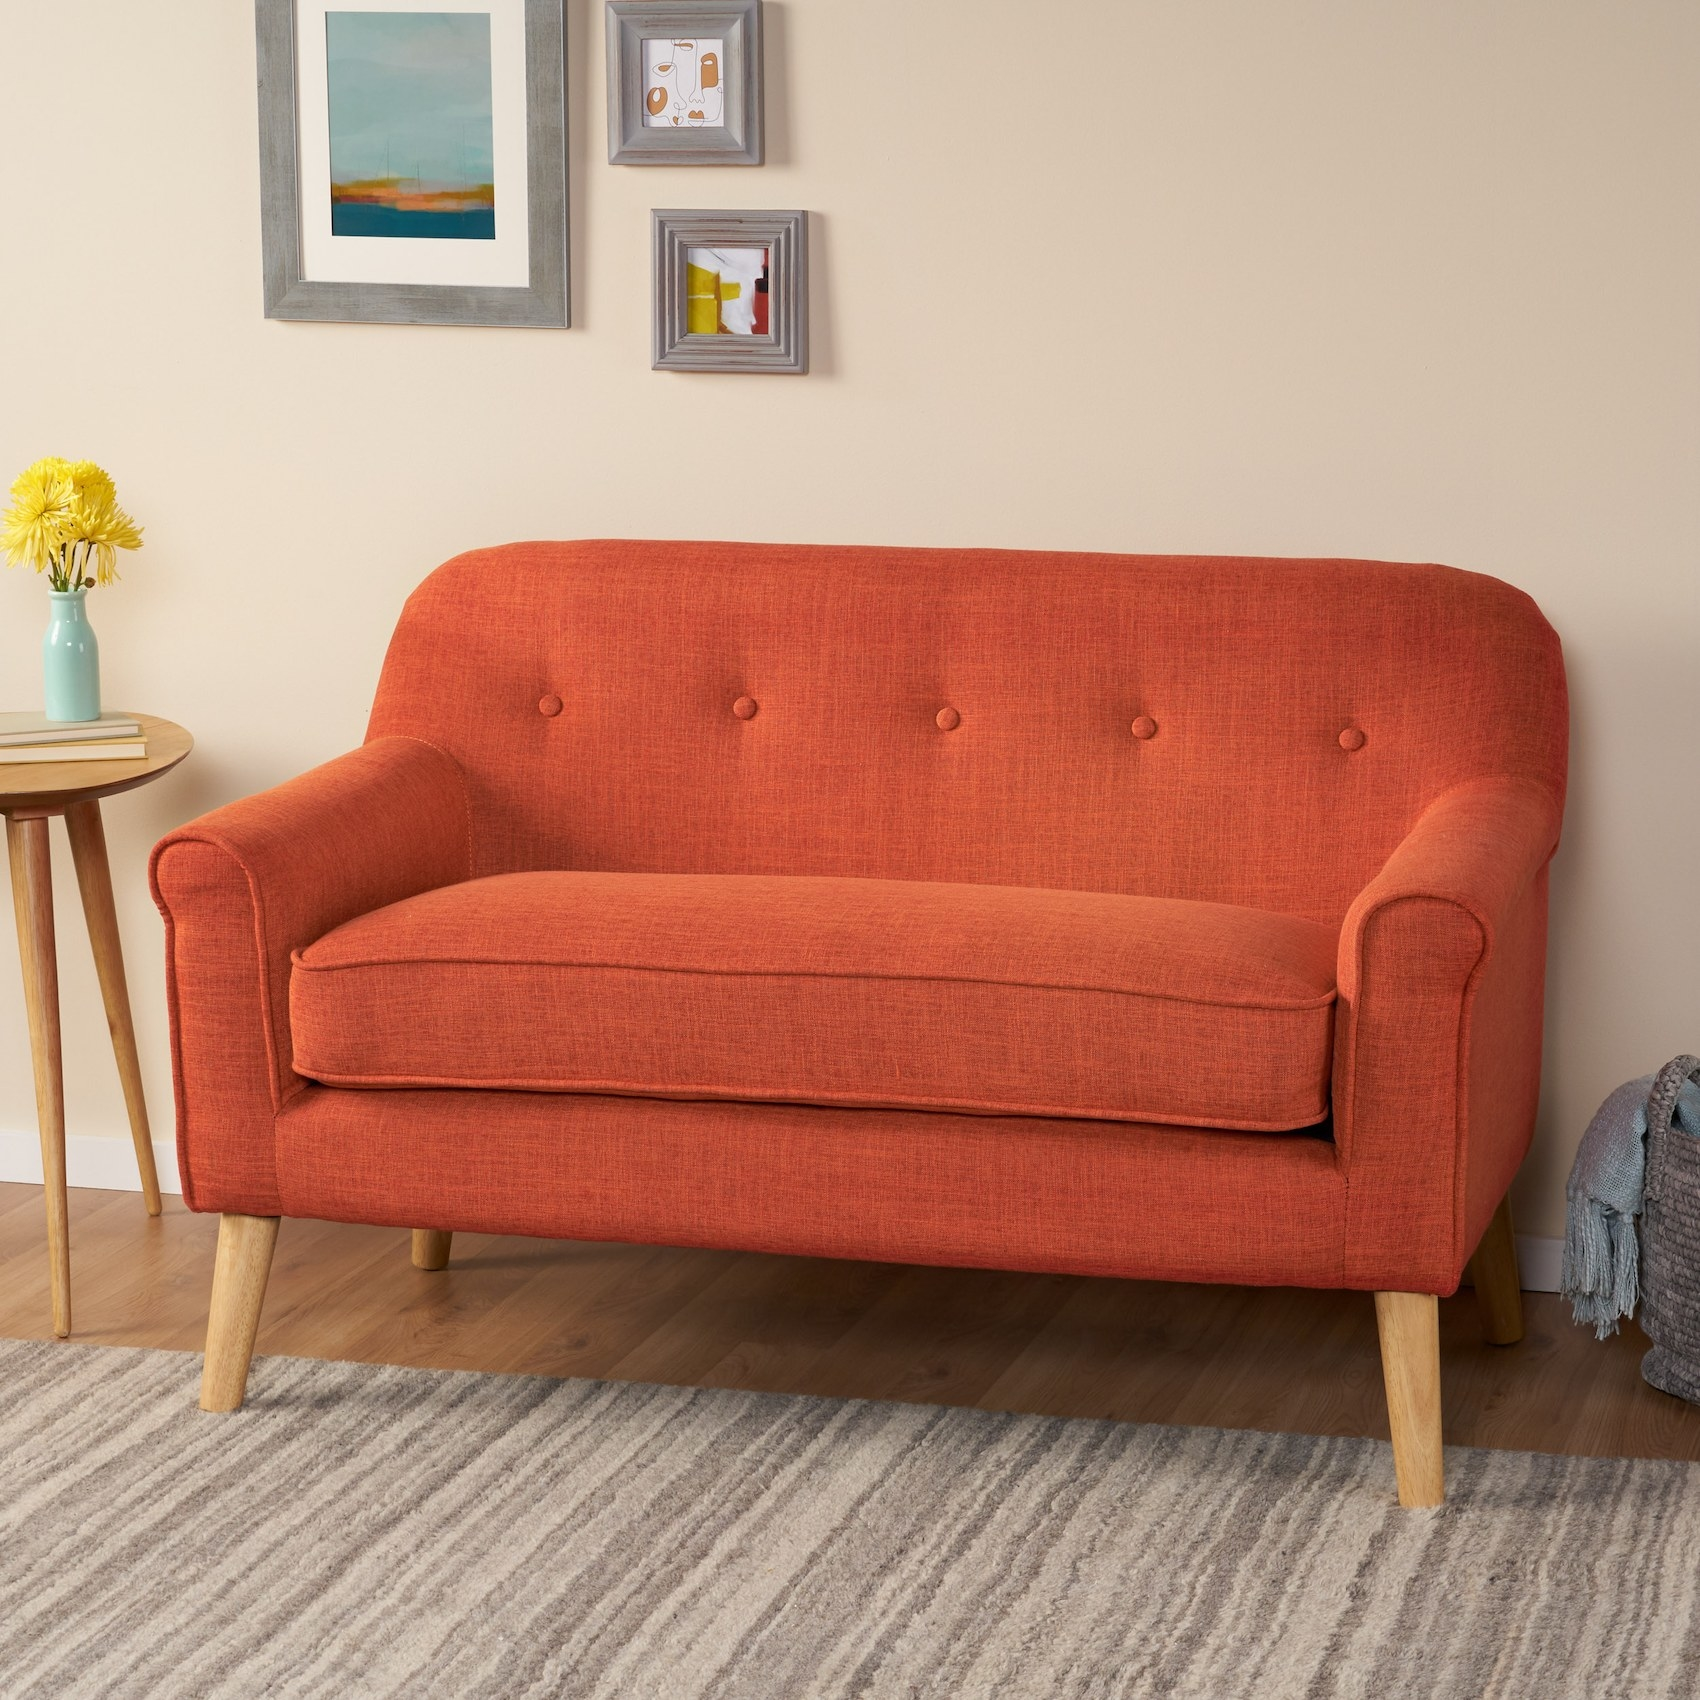 The orange loveseat with rounded arms and wooden legs in a living room